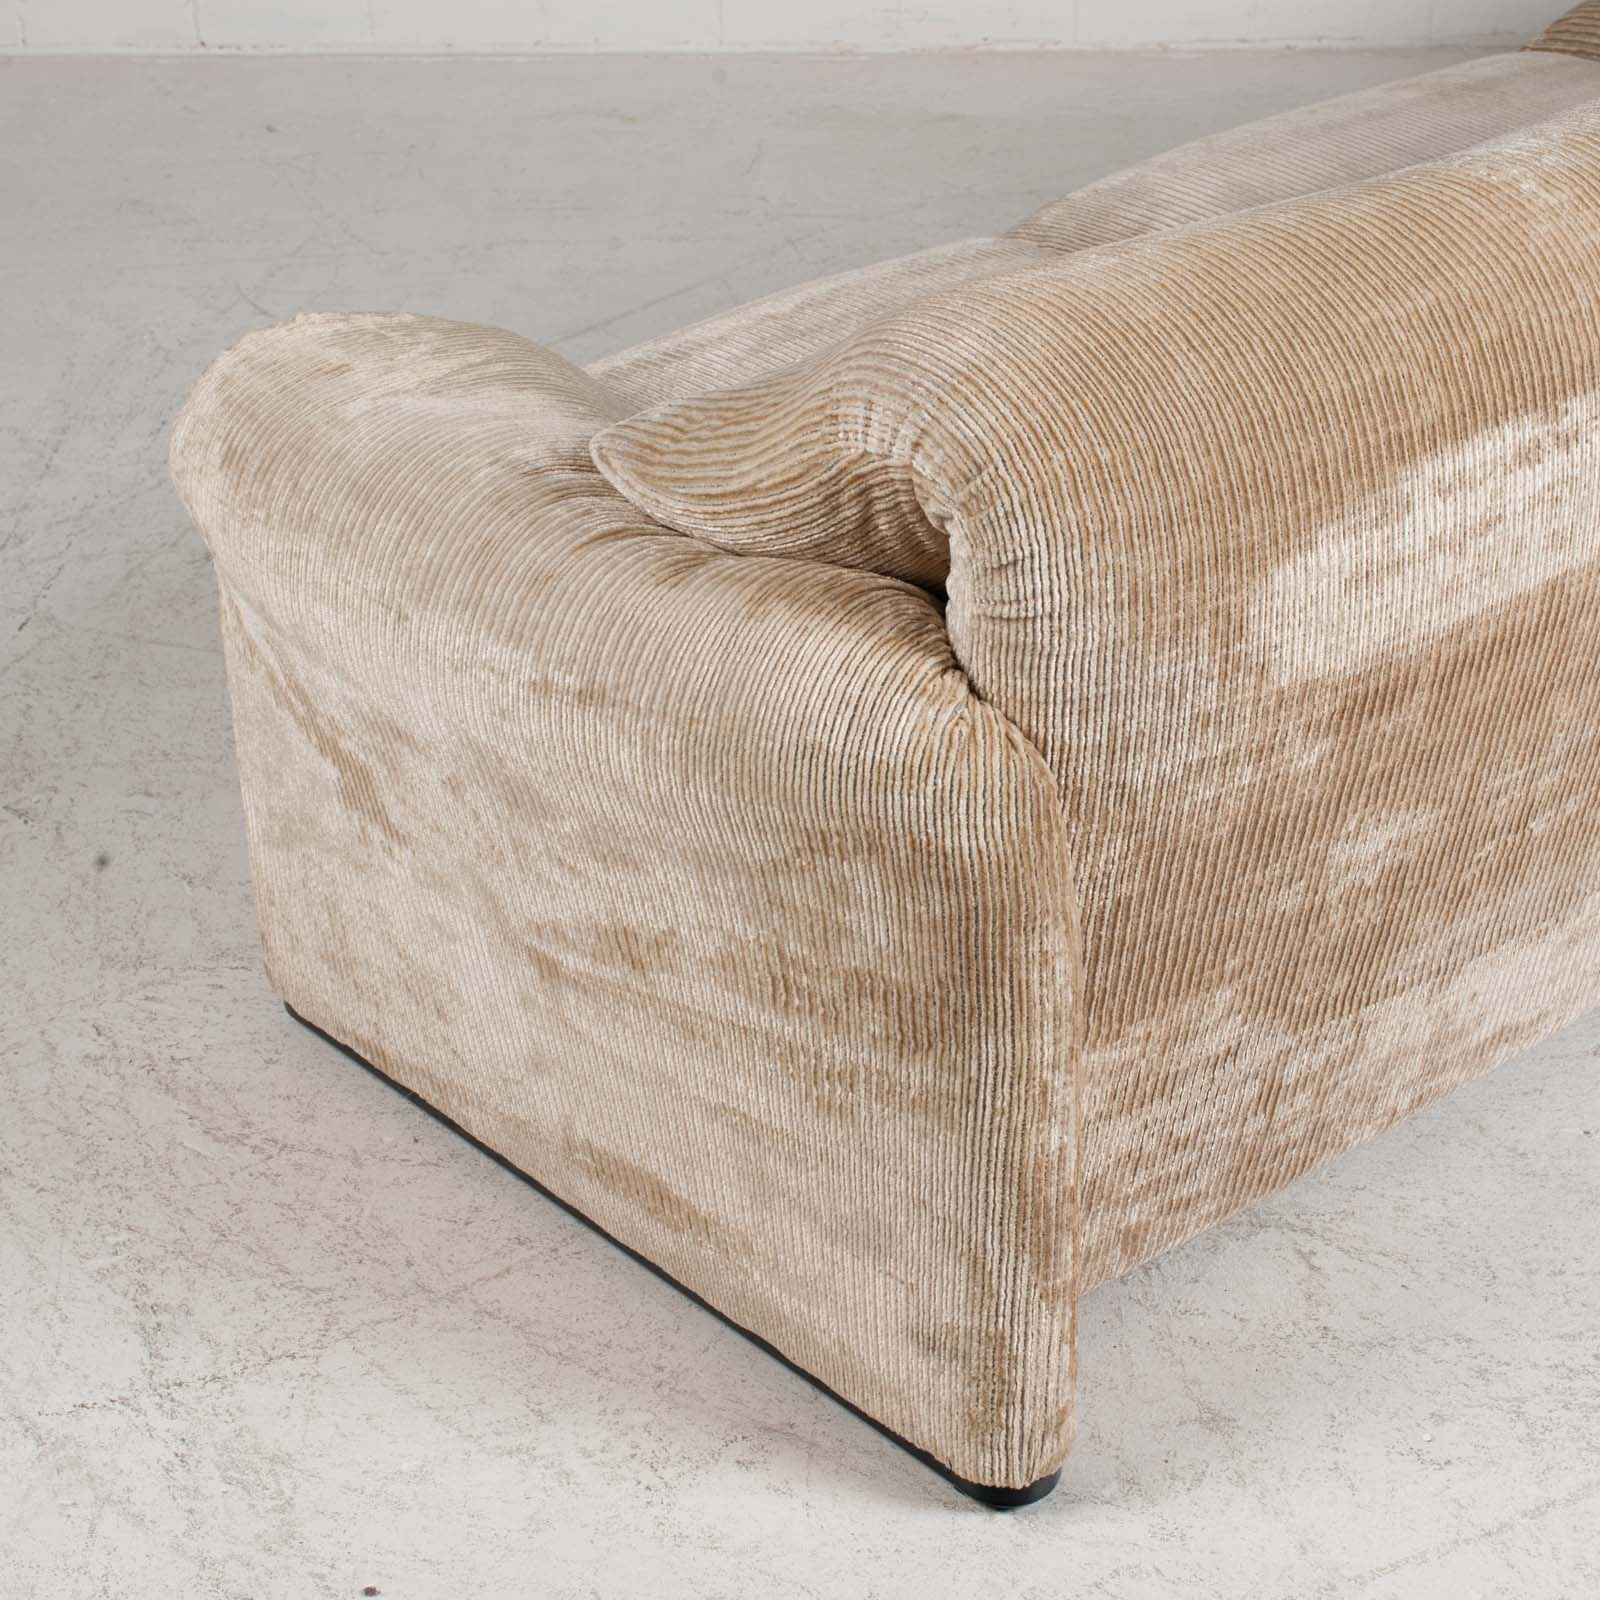 Maralunga 3 Seat Sofa By Vico Magistretti For Cassina In Original Upholstery 1970s Italy 021